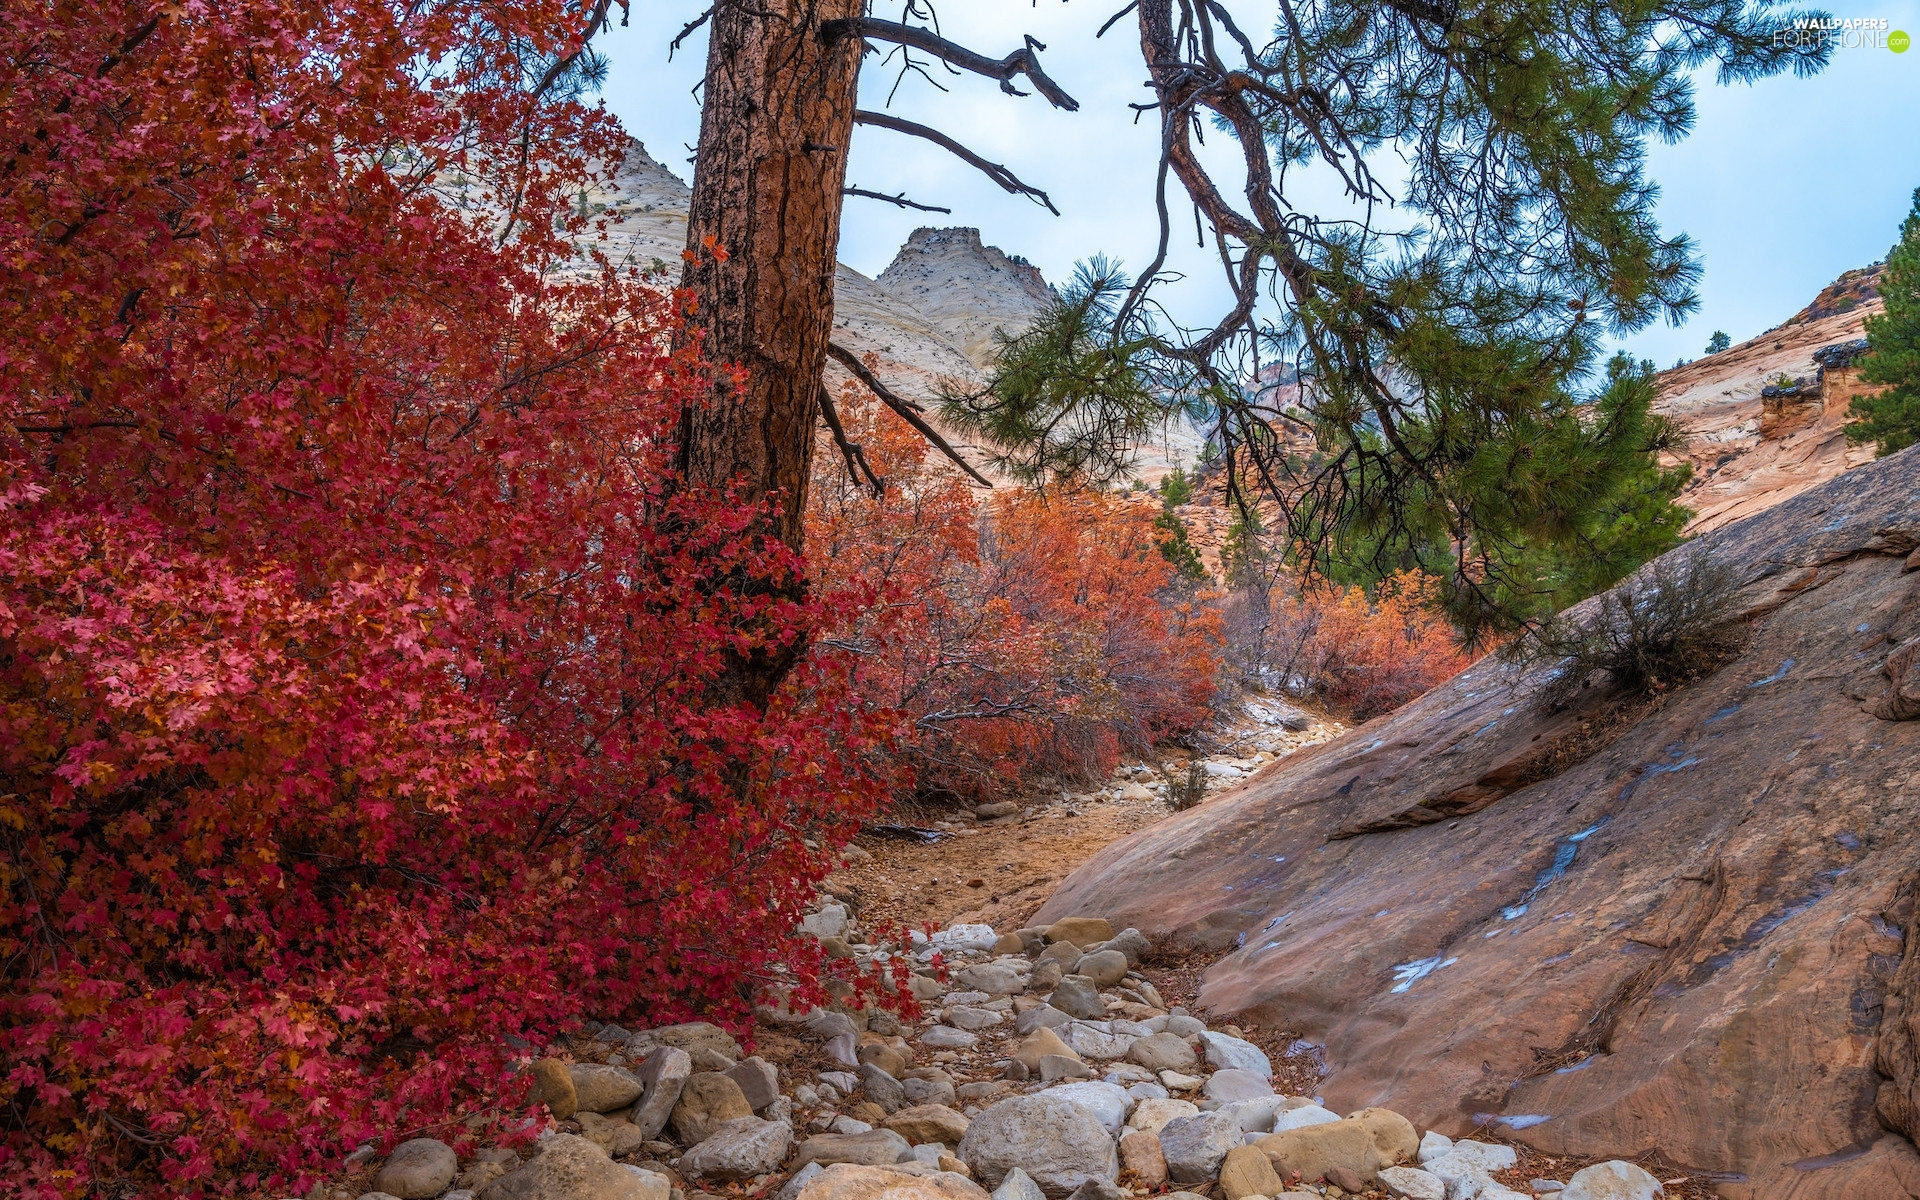 Utah State, Zion National Park, The United States, autumn, Red, Bush, VEGETATION, trees, rocks